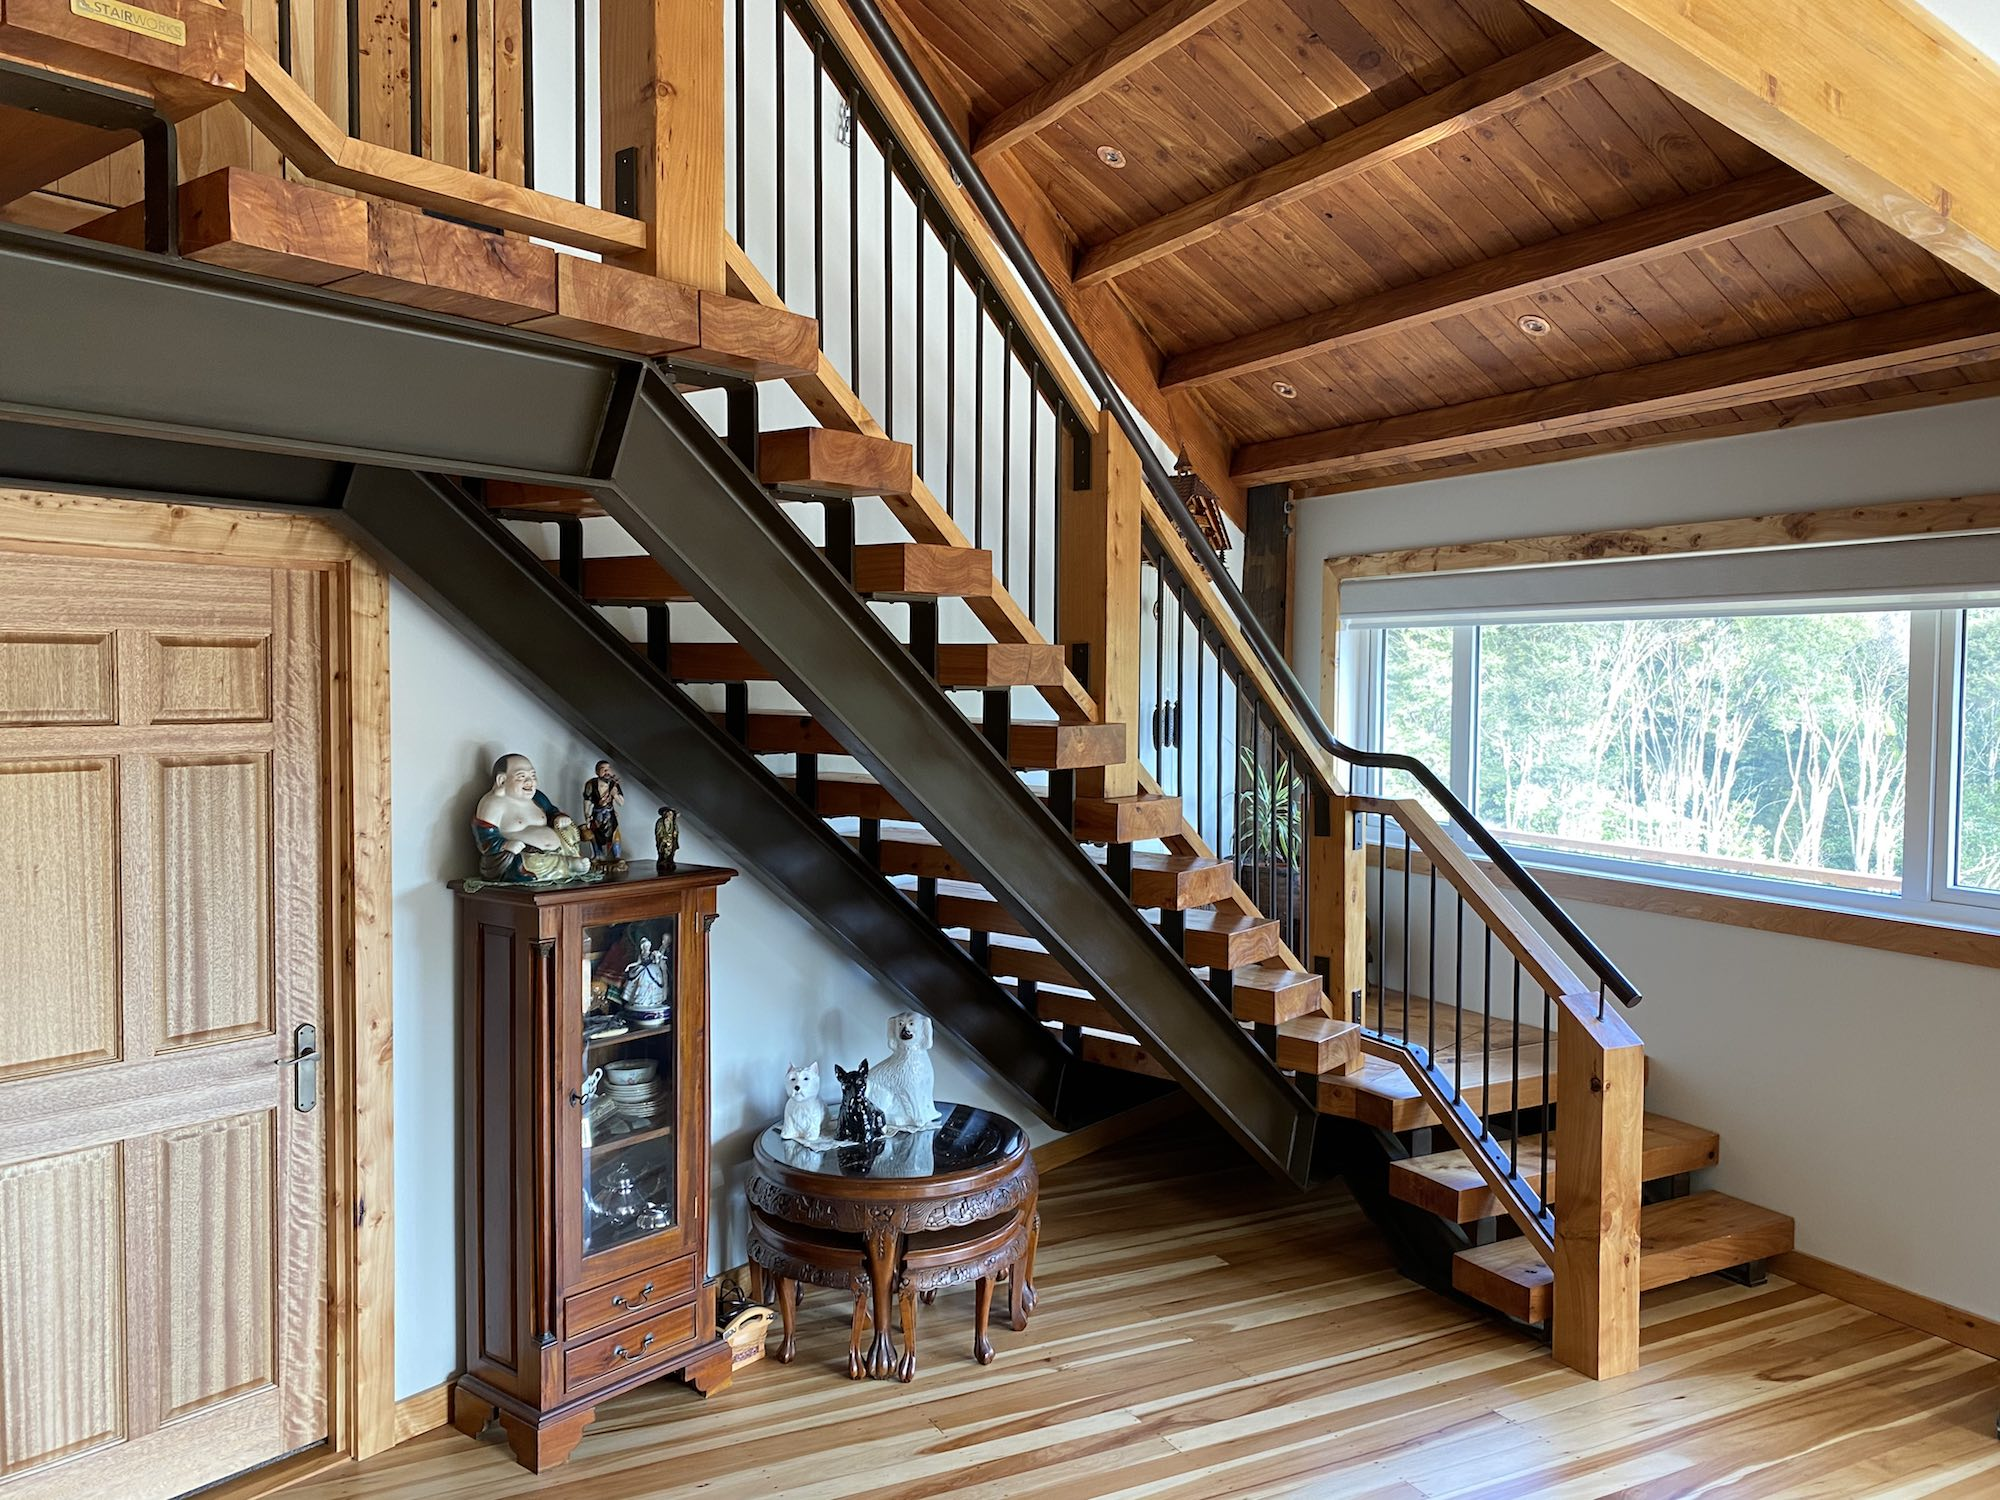 Reclaimed wood and steel were used to give this staircase in Auckland a rustic and imperfect aesthet